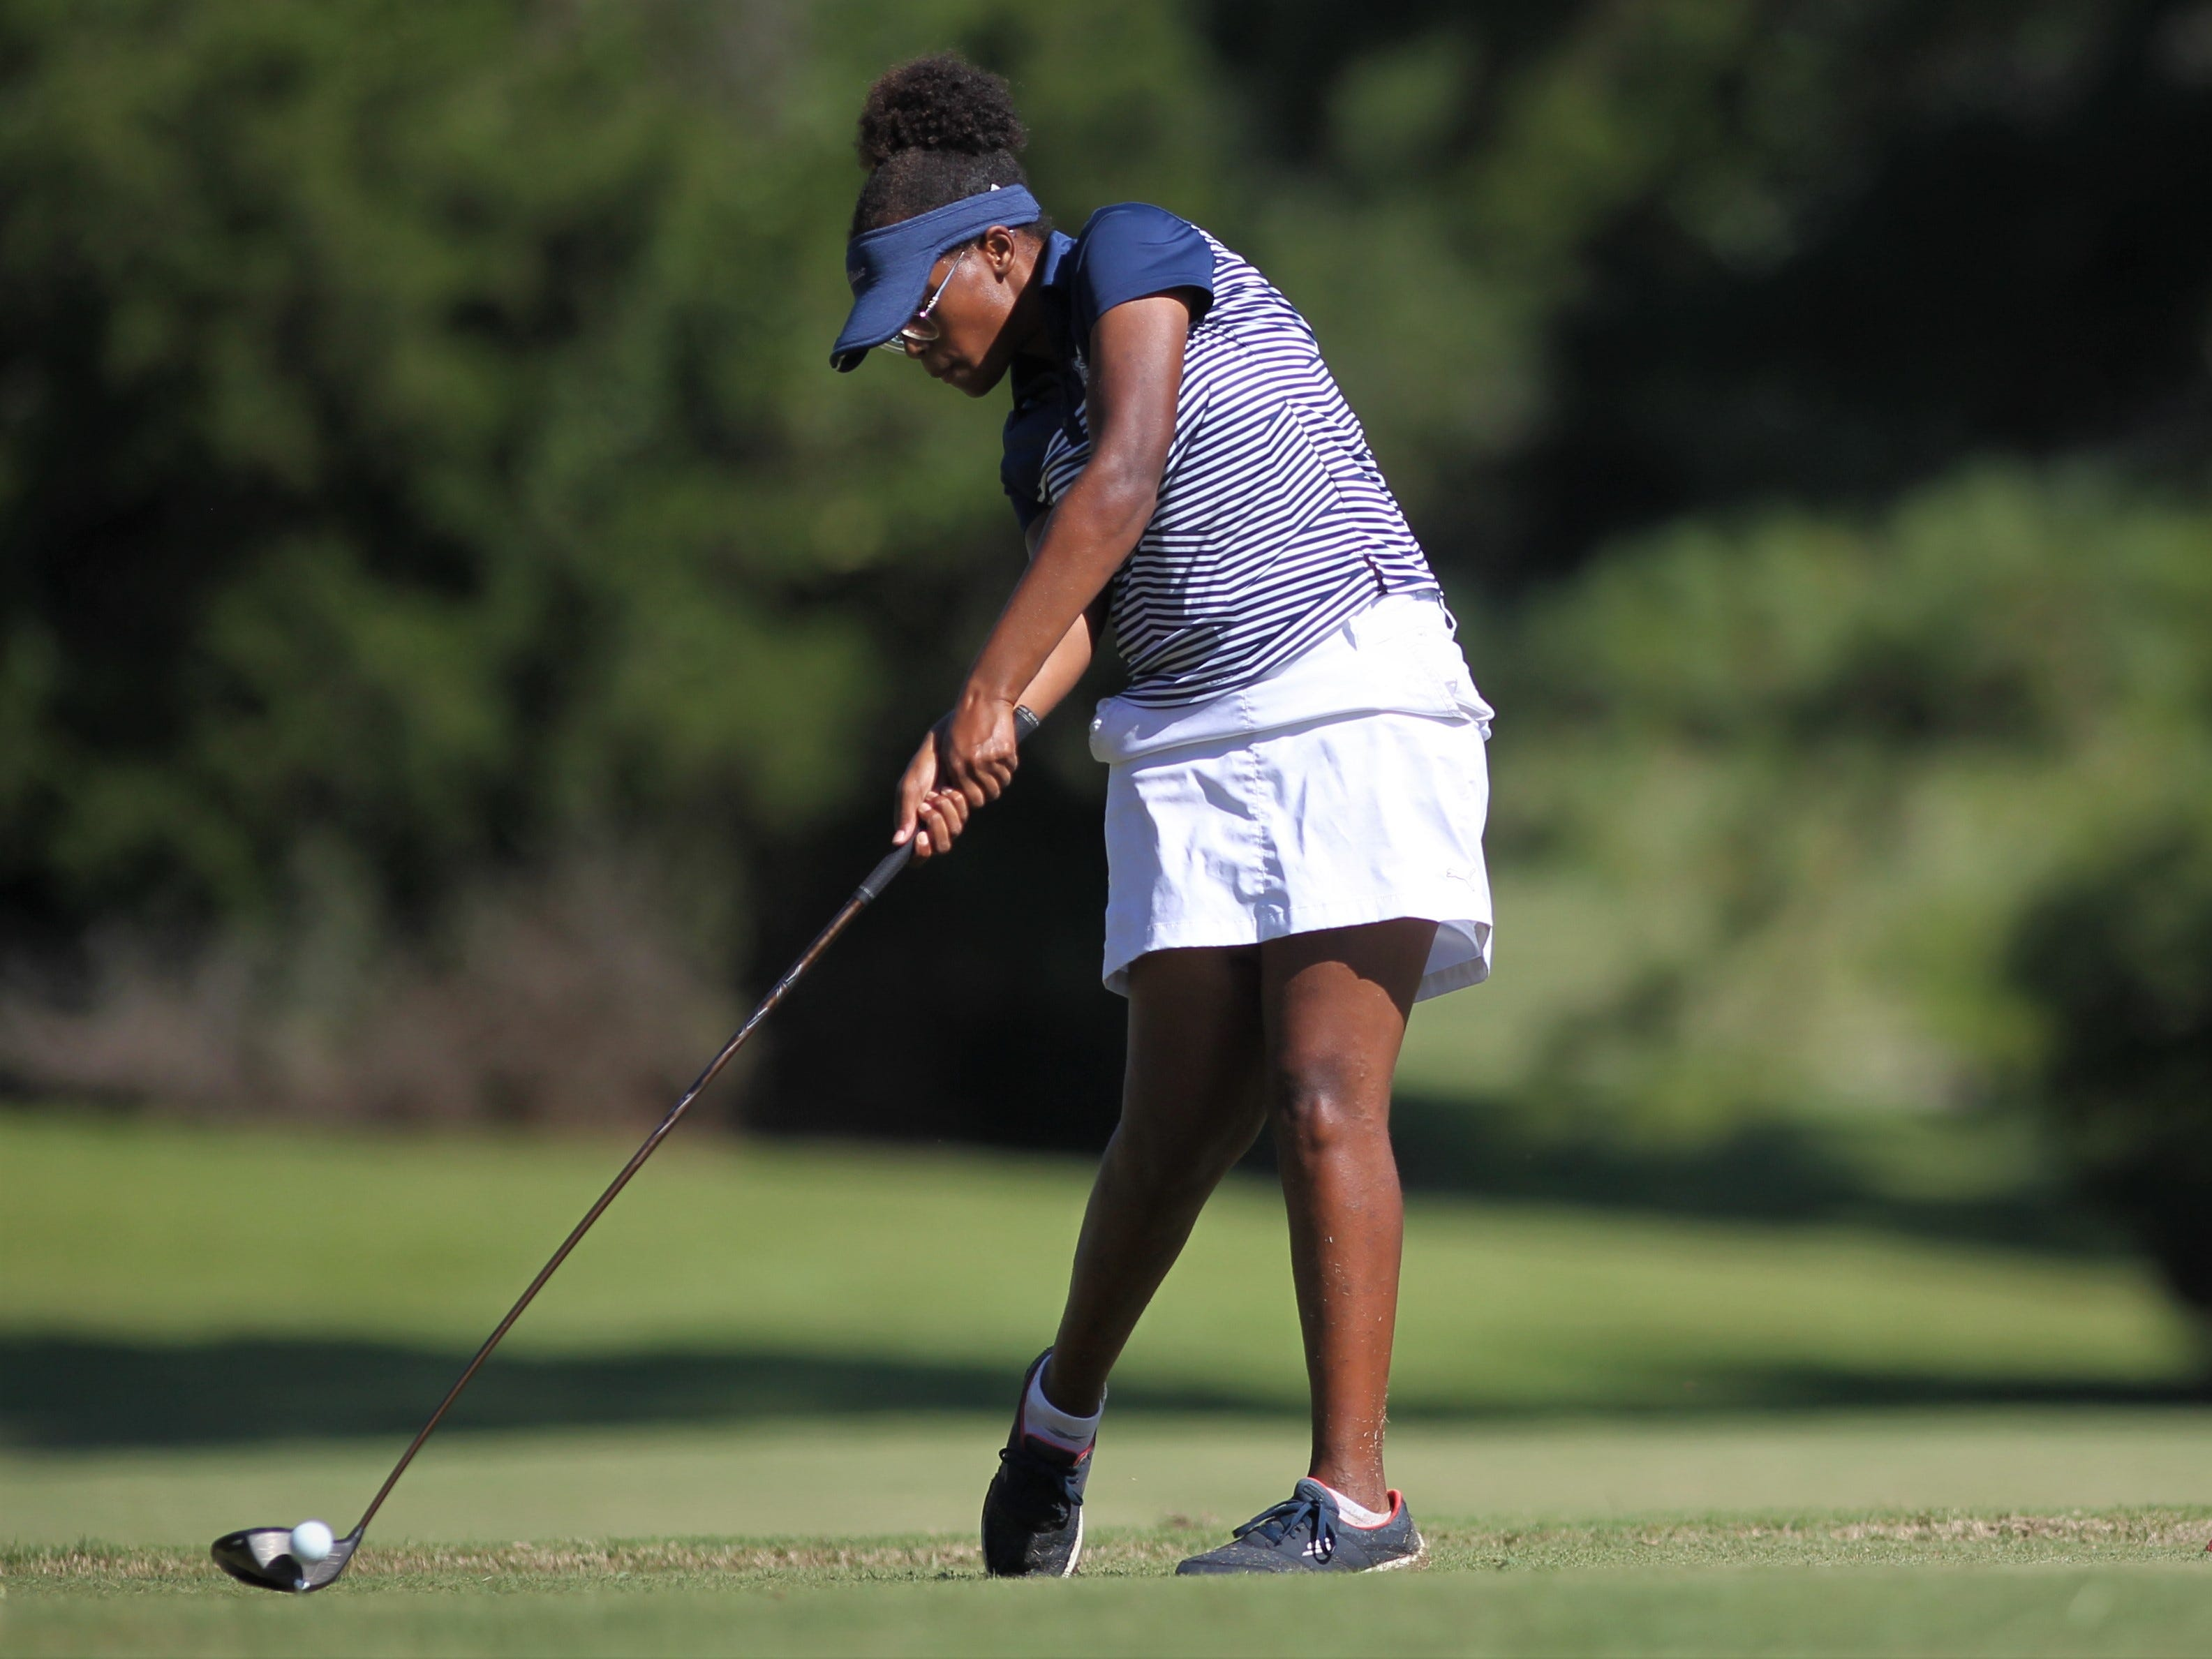 Maclay sophomore Annika Dean tees off during the girls golf Panhandle Invitational at Killearn Country Club, Oct. 4, 2018.